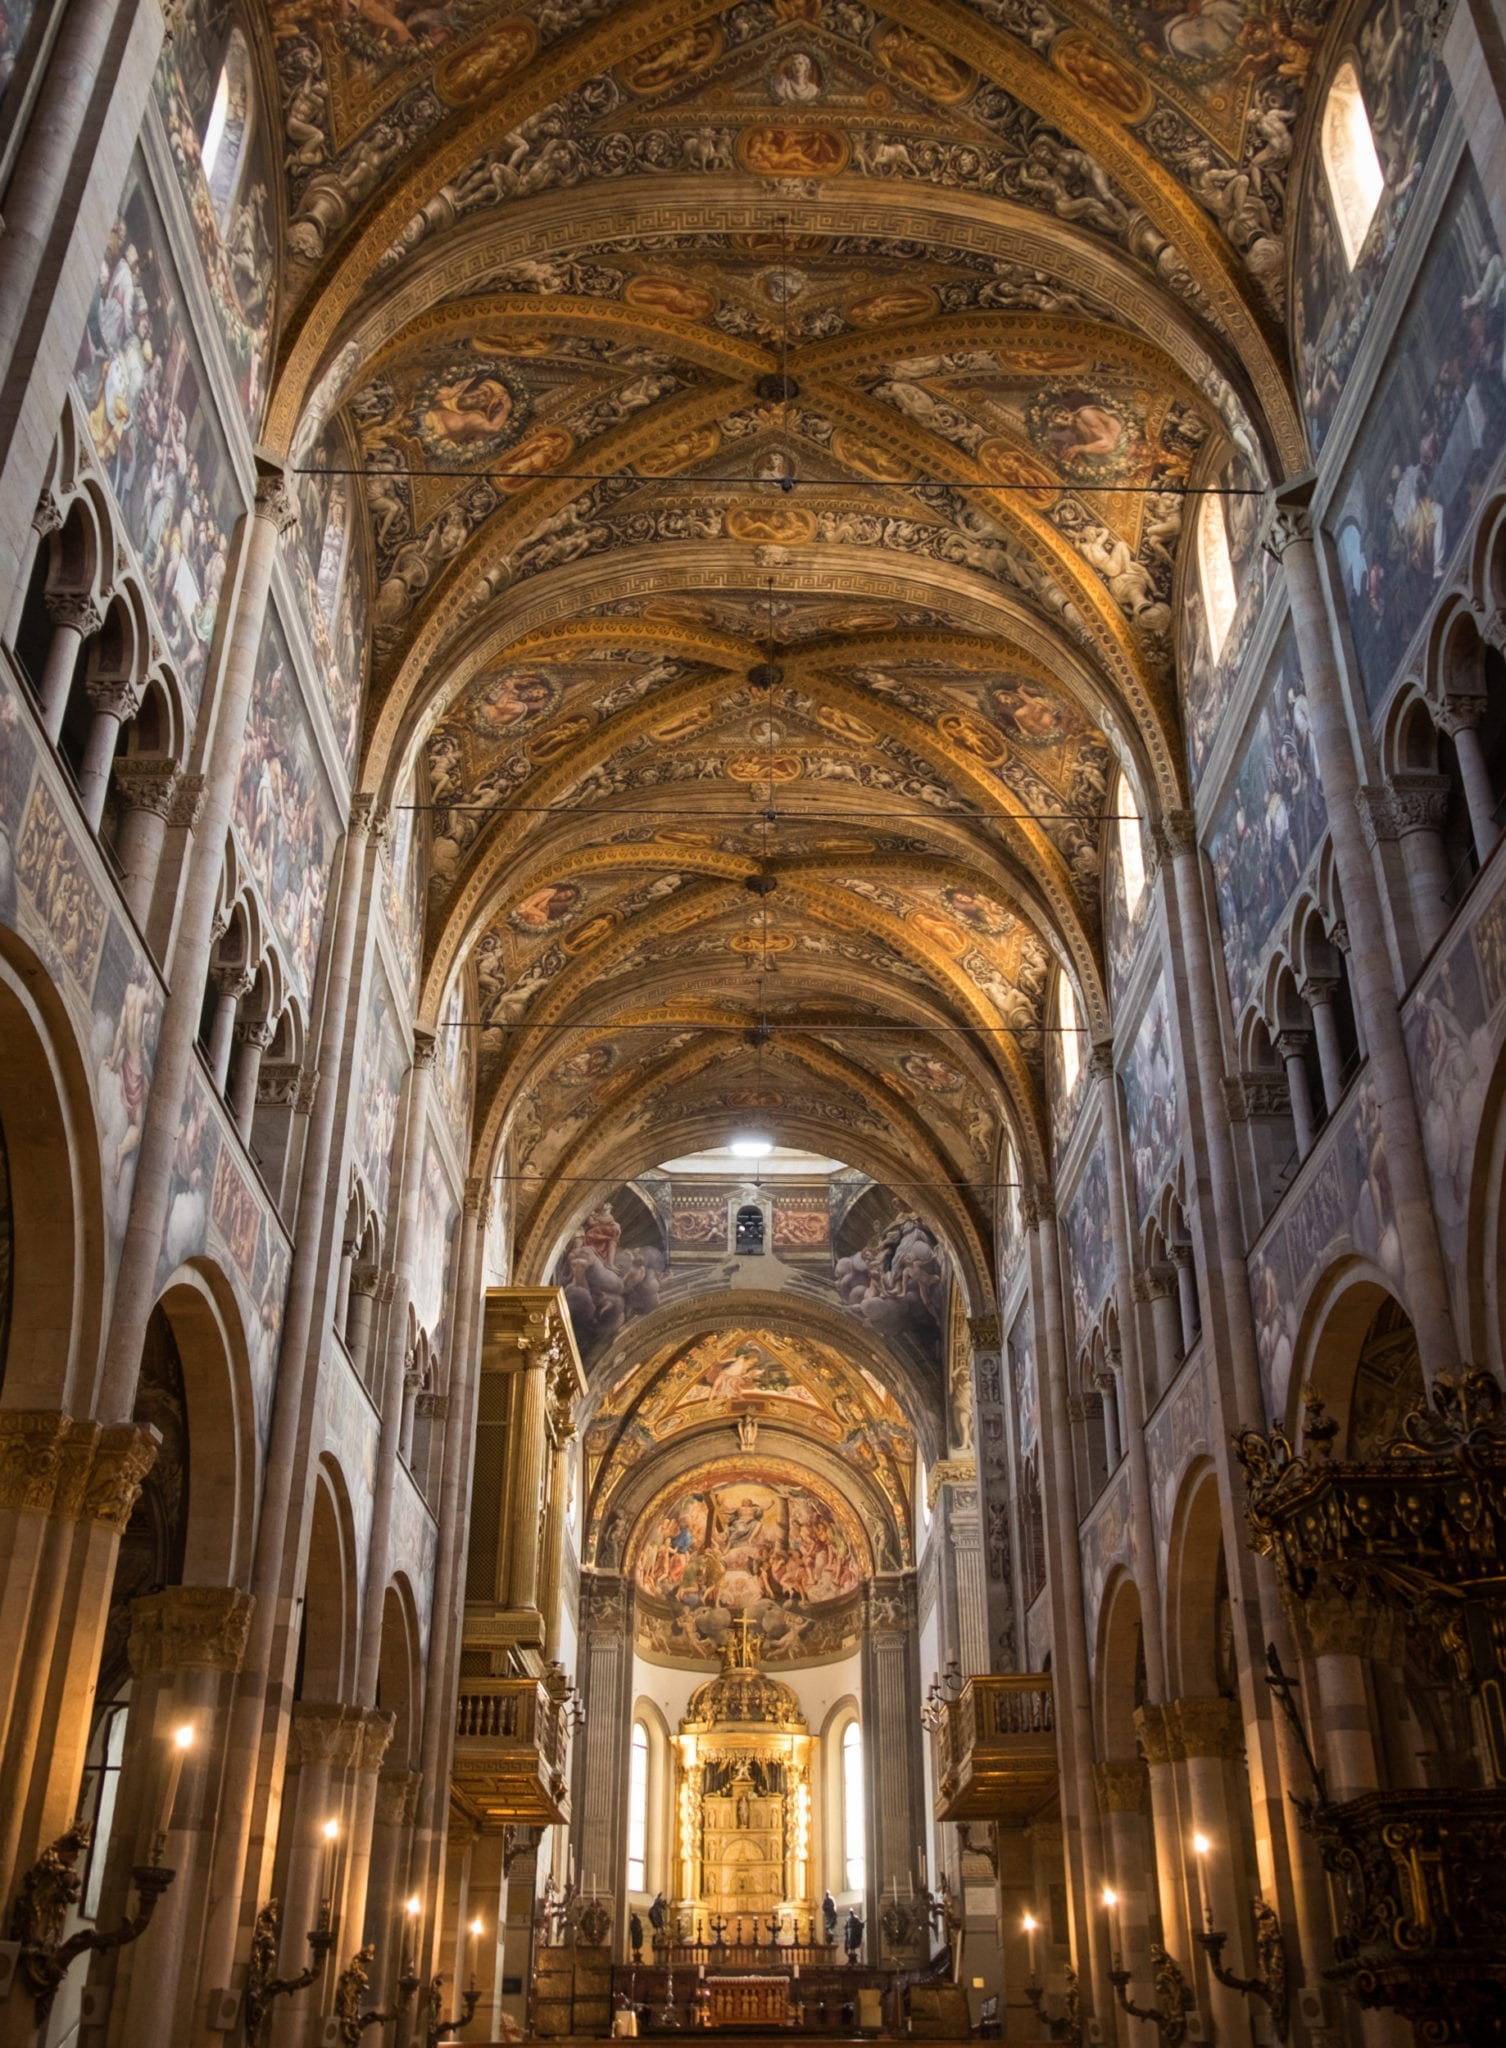 Parma's cathedral, leading back to the altar, each wall covered with paintings and ornate gold decoration.